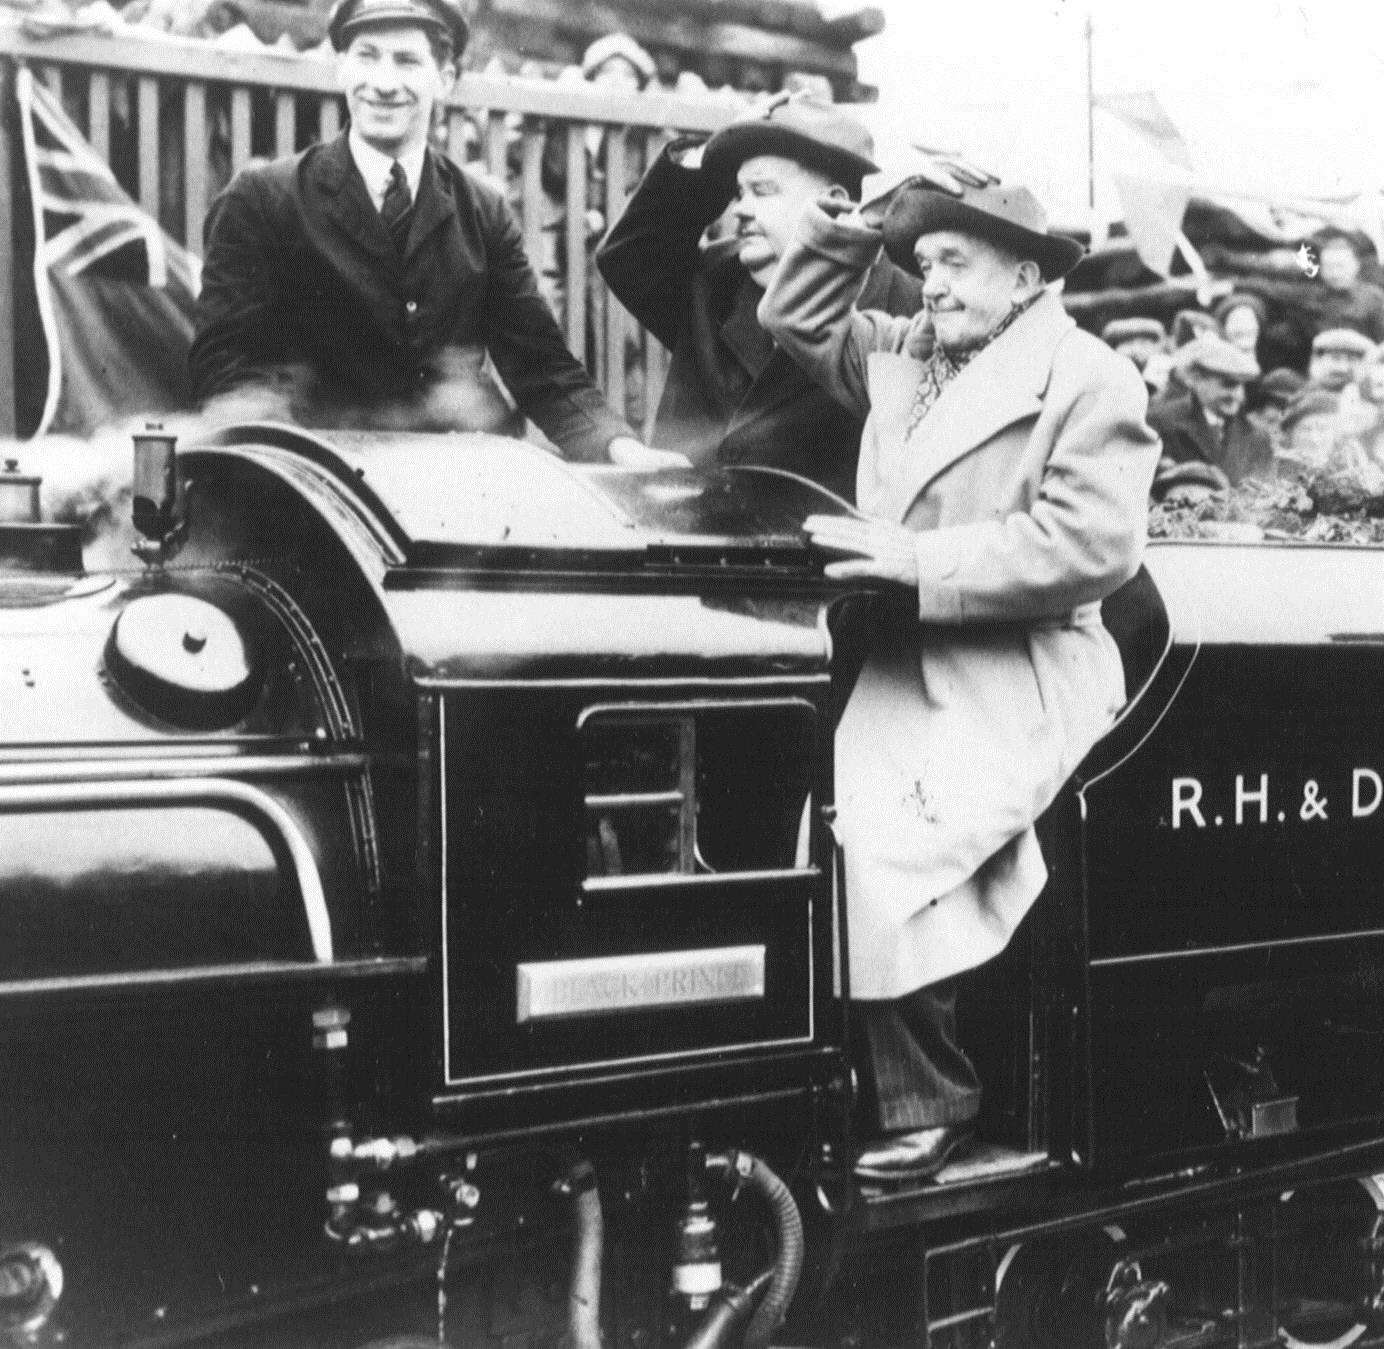 Laurel & Hardy at the re-opening of the Romney, Hythe and Dymchurch Railway in 1947